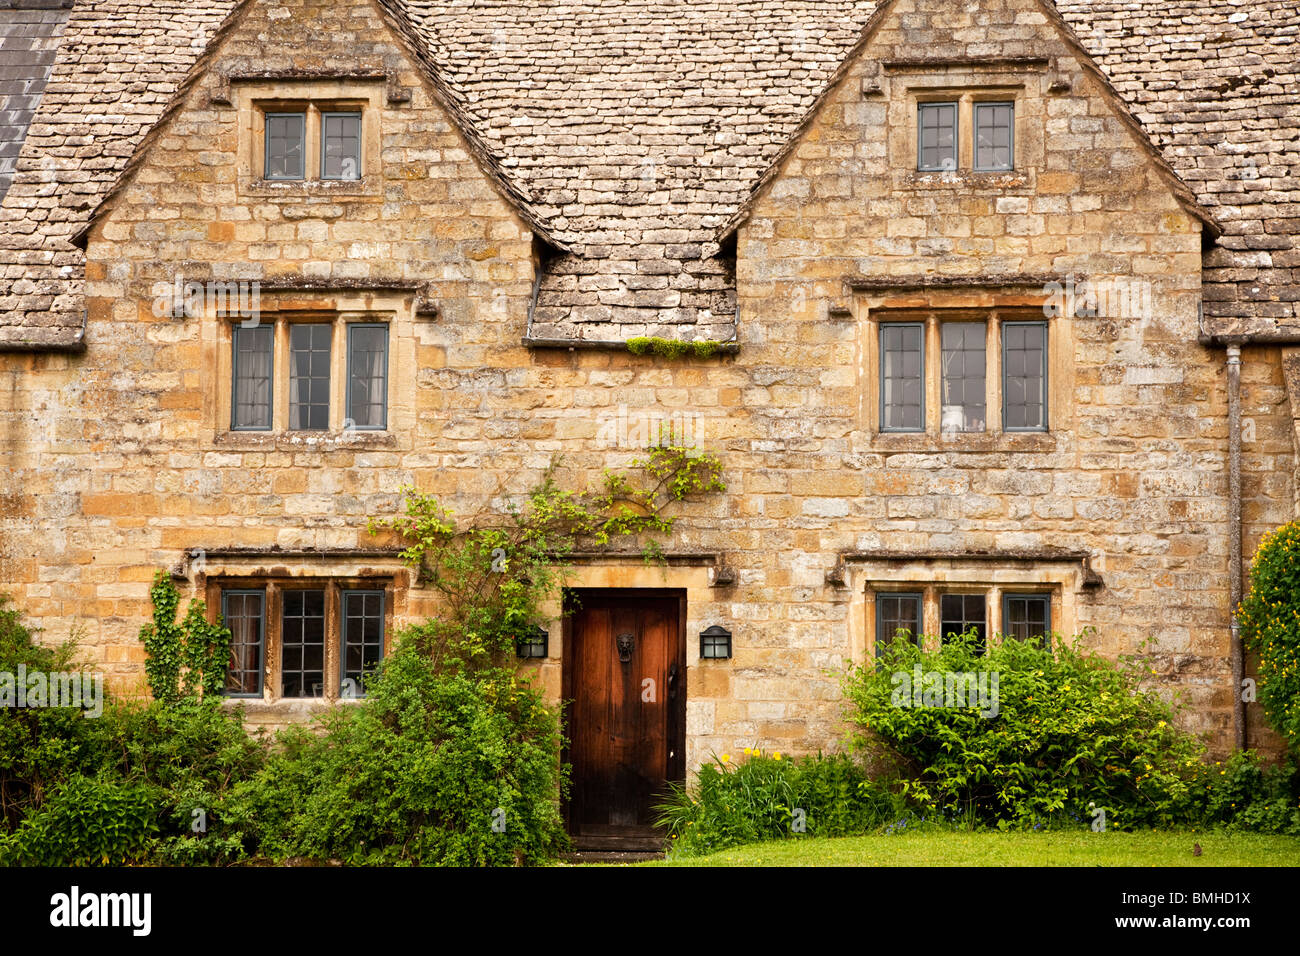 A typical Cotswold stone country house with leaded lights, mullion windows, gable fronted dormer windows and a wooden - Stock Image